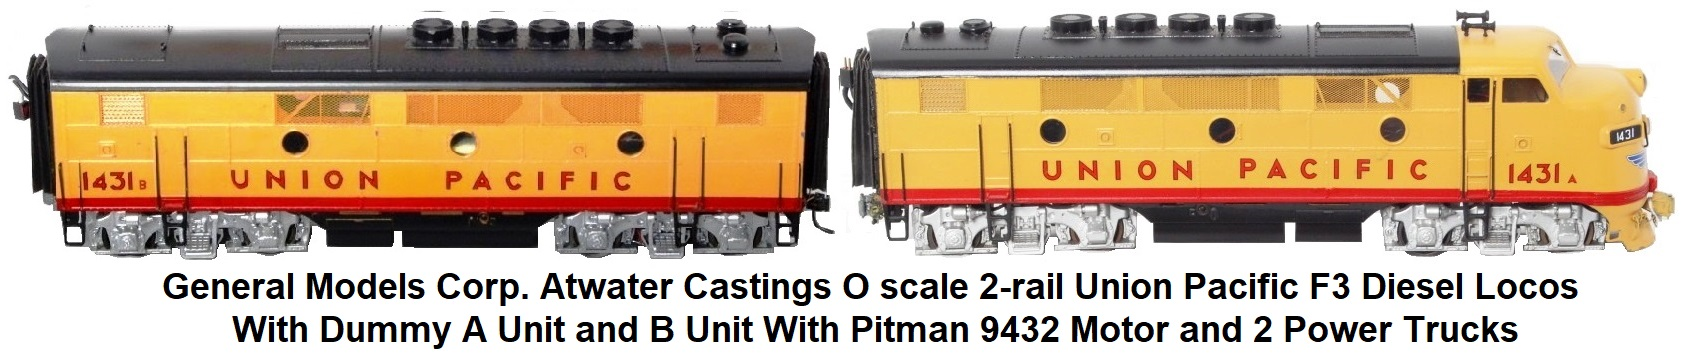 General Models Corp. O scale 2-rail Union Pacific F3 diesel locomotives made of Atwater castings, dummy A unit and B unit with both trucks powered by a Pitman 9432 motor